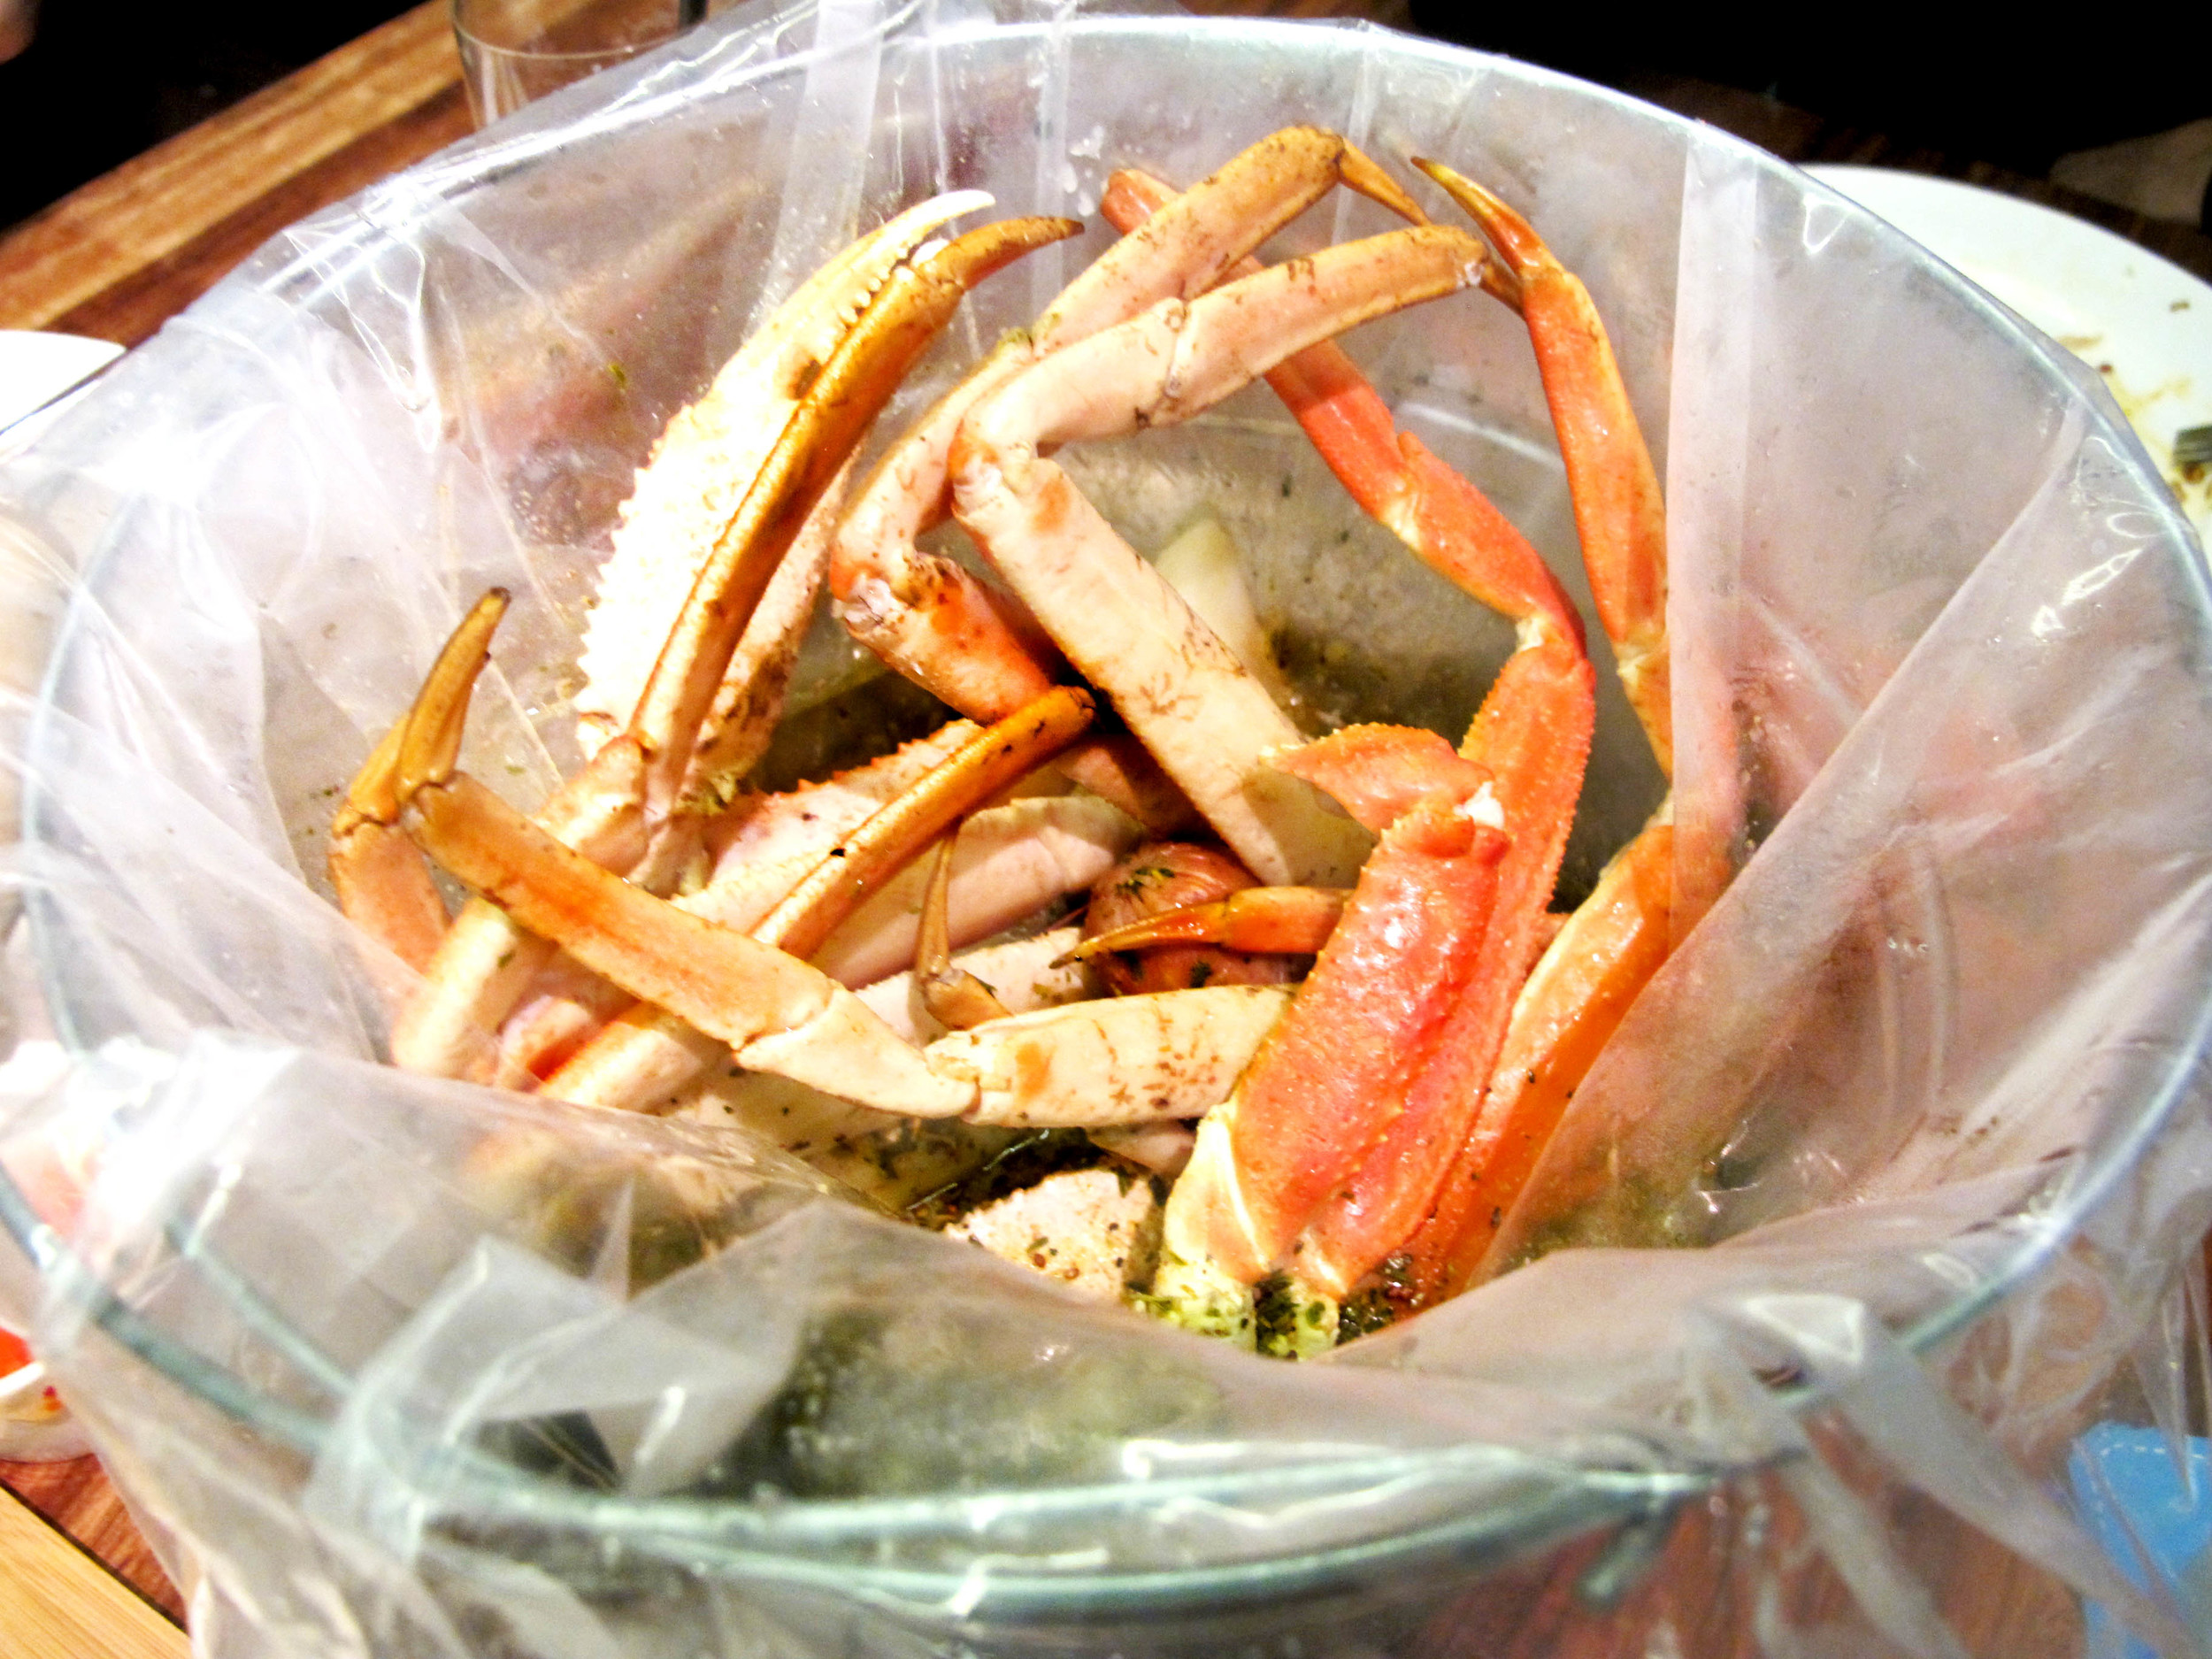 The King Crab Legs were meaty and delicious - really fun to get stuck into and mega tasty with the sauce they served them with!